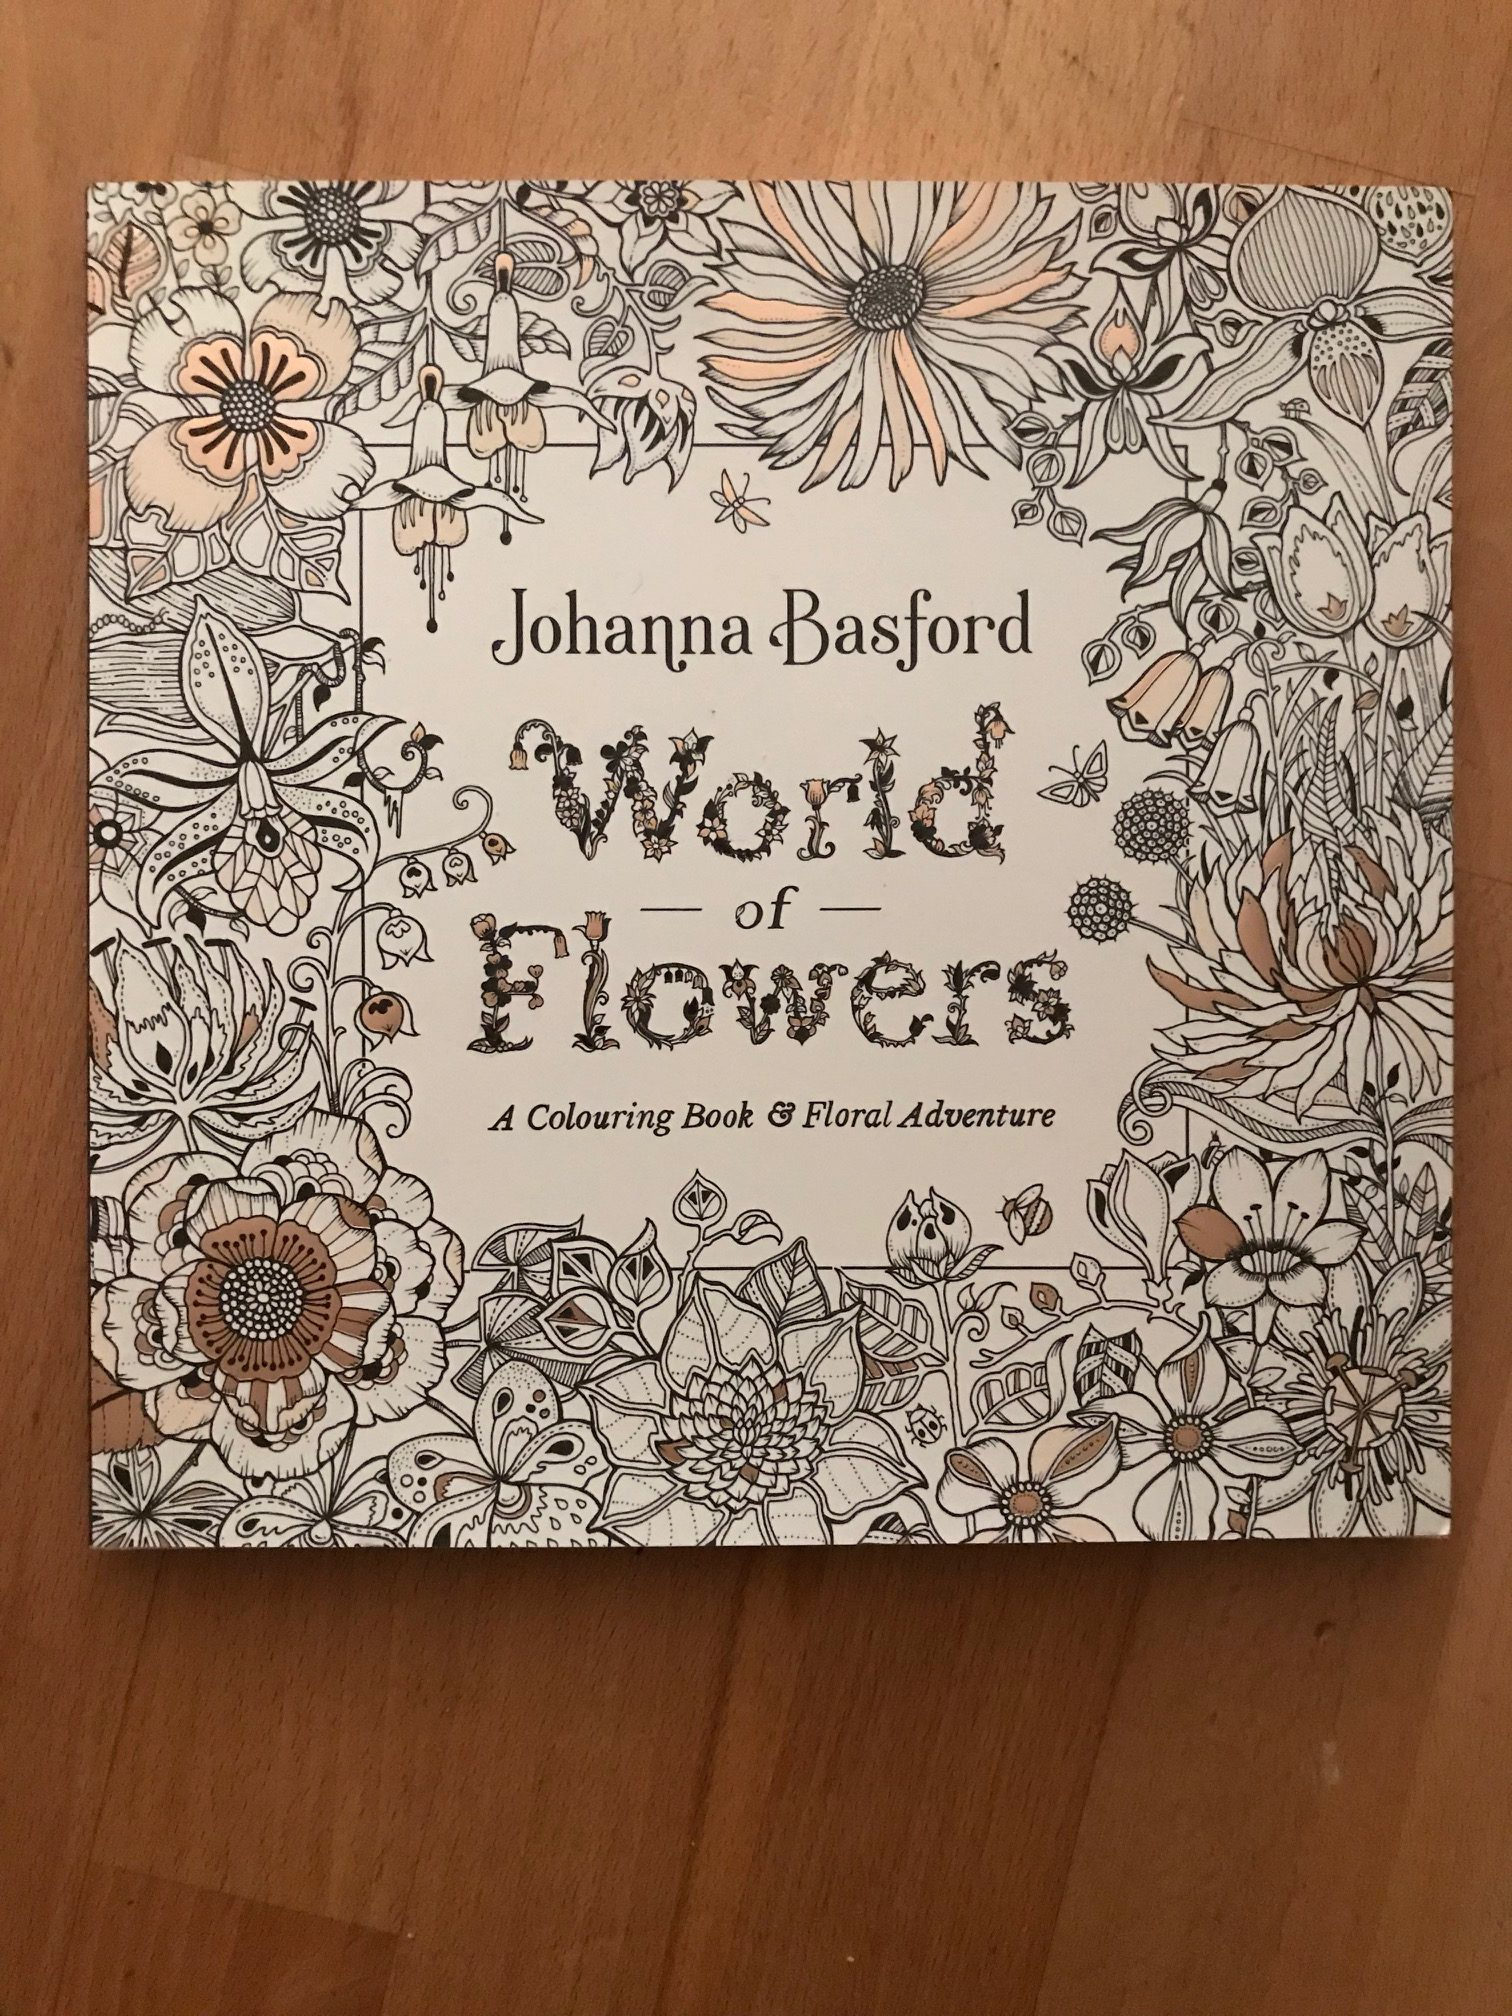 World Of Flowers A Colouring Book And Floral Adventure By Johanna